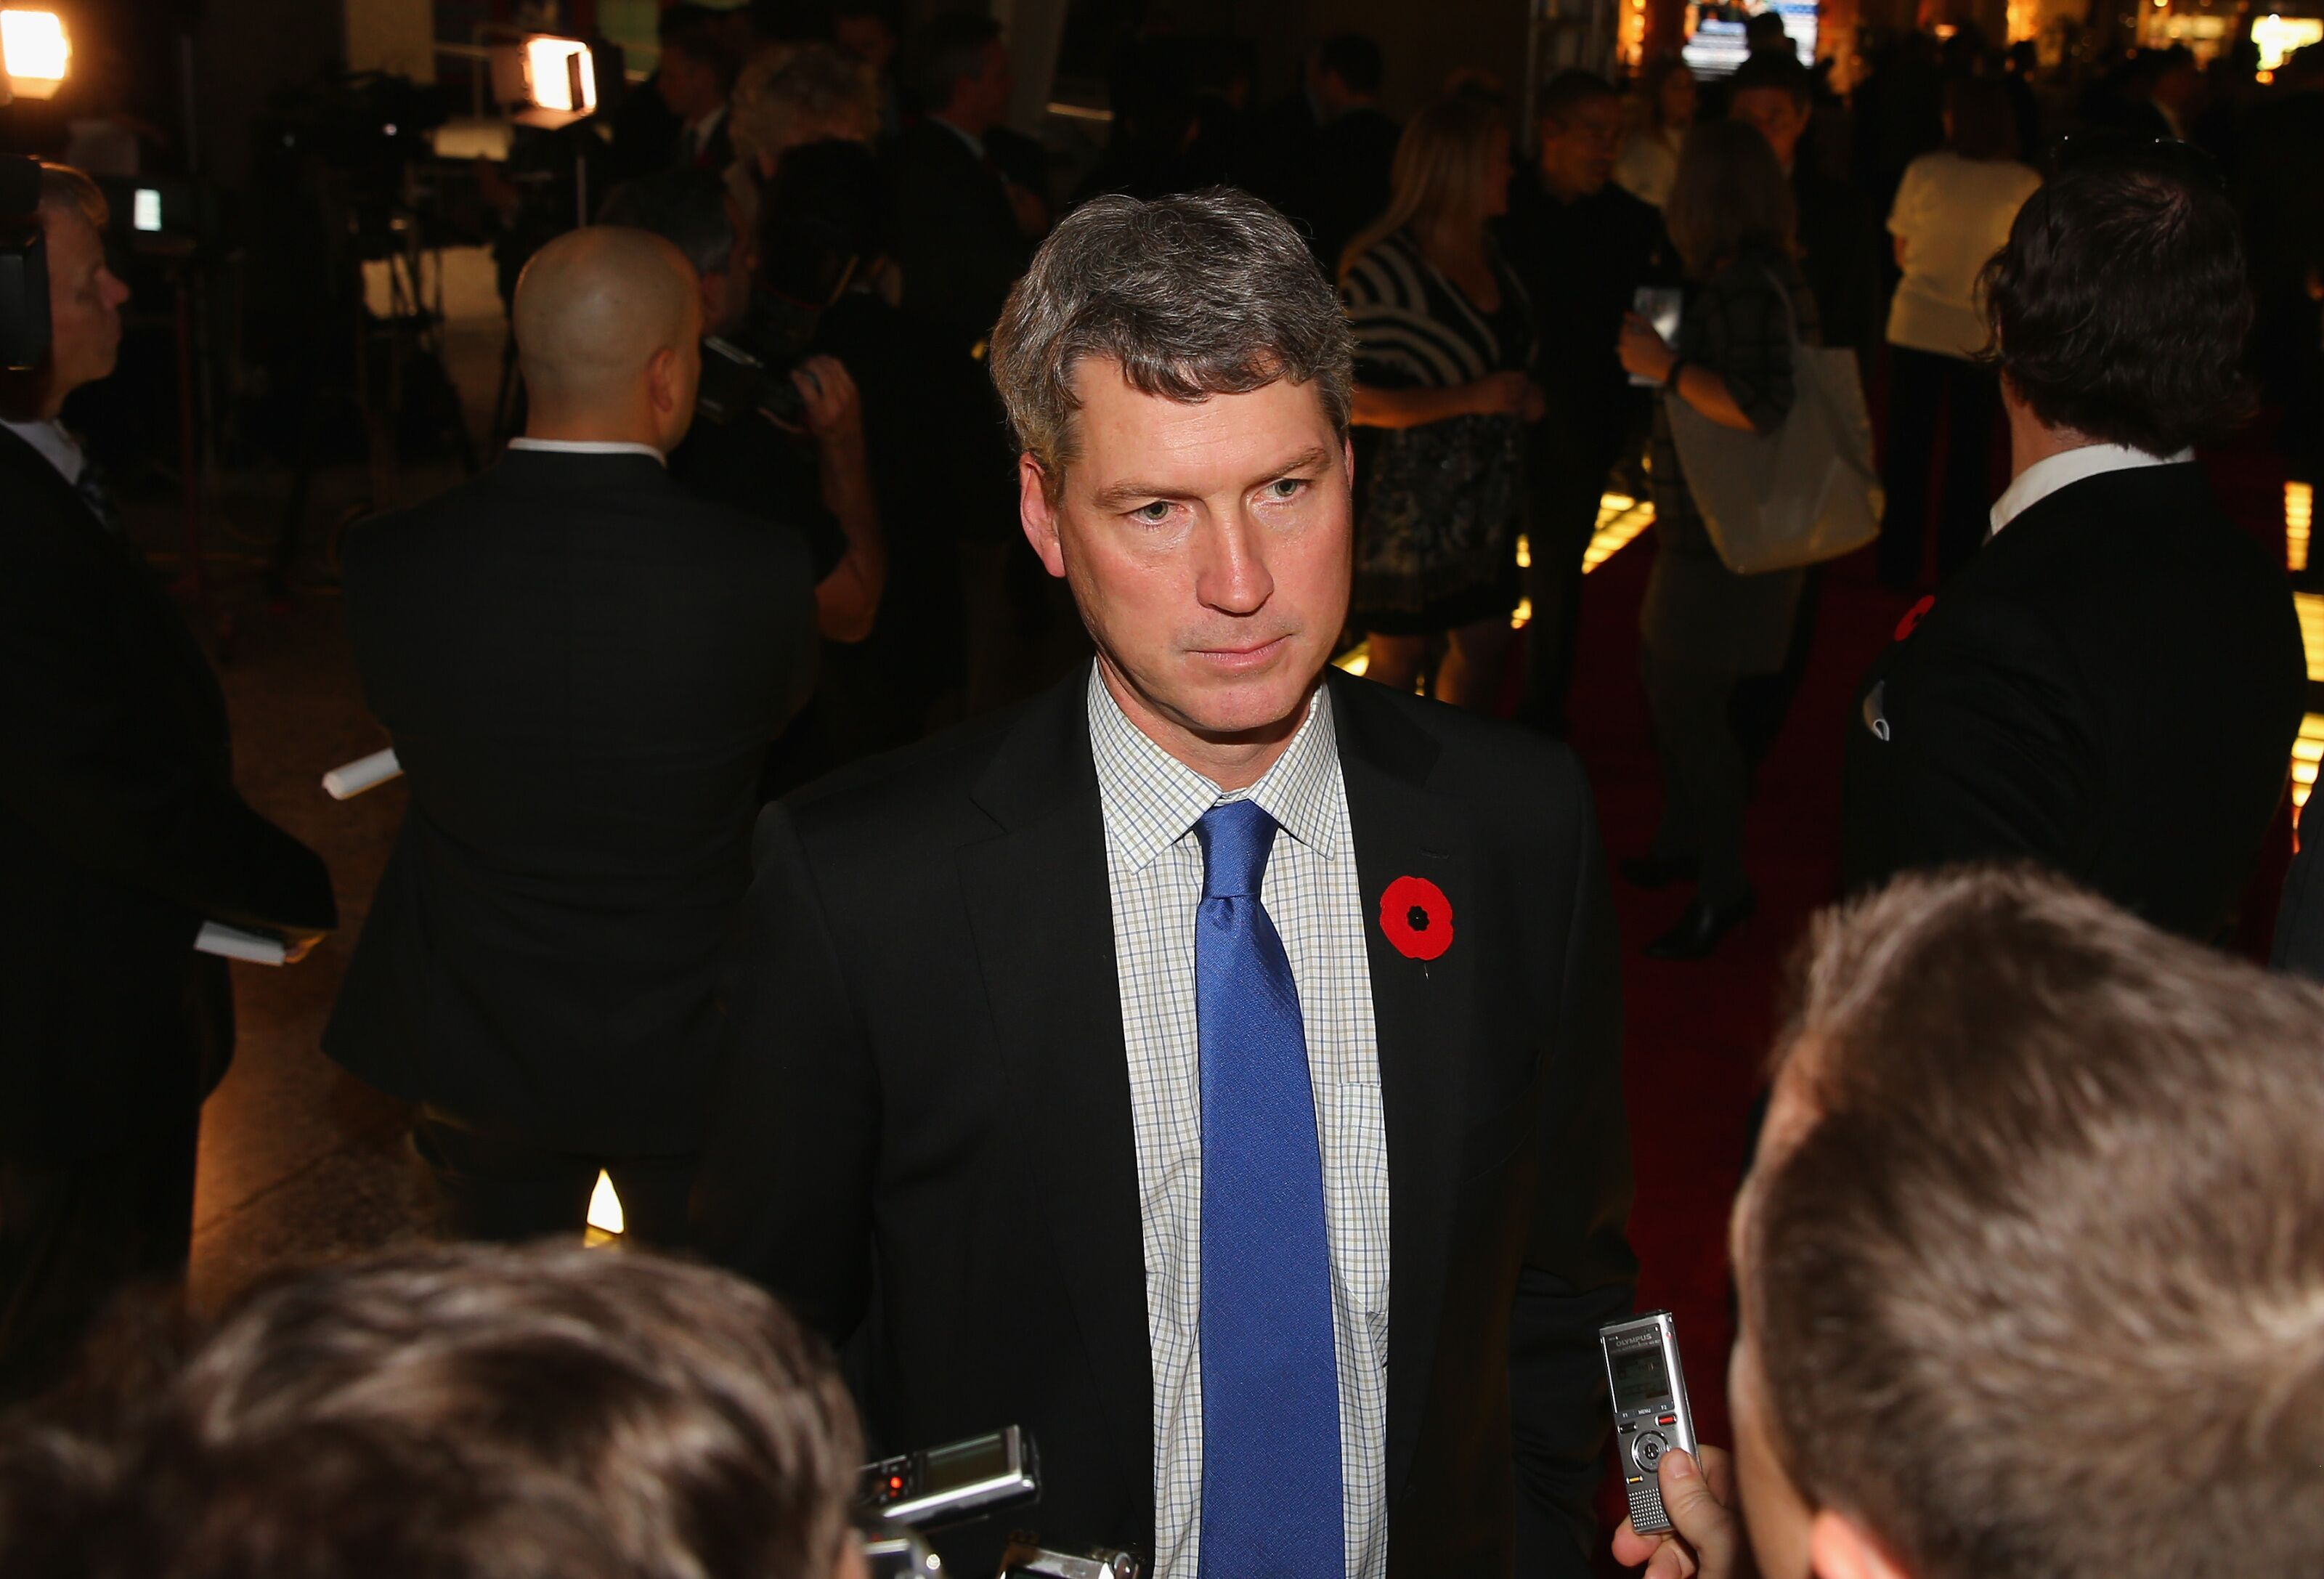 496450186-2015-hockey-hall-of-fame-induction-red-carpet.jpg